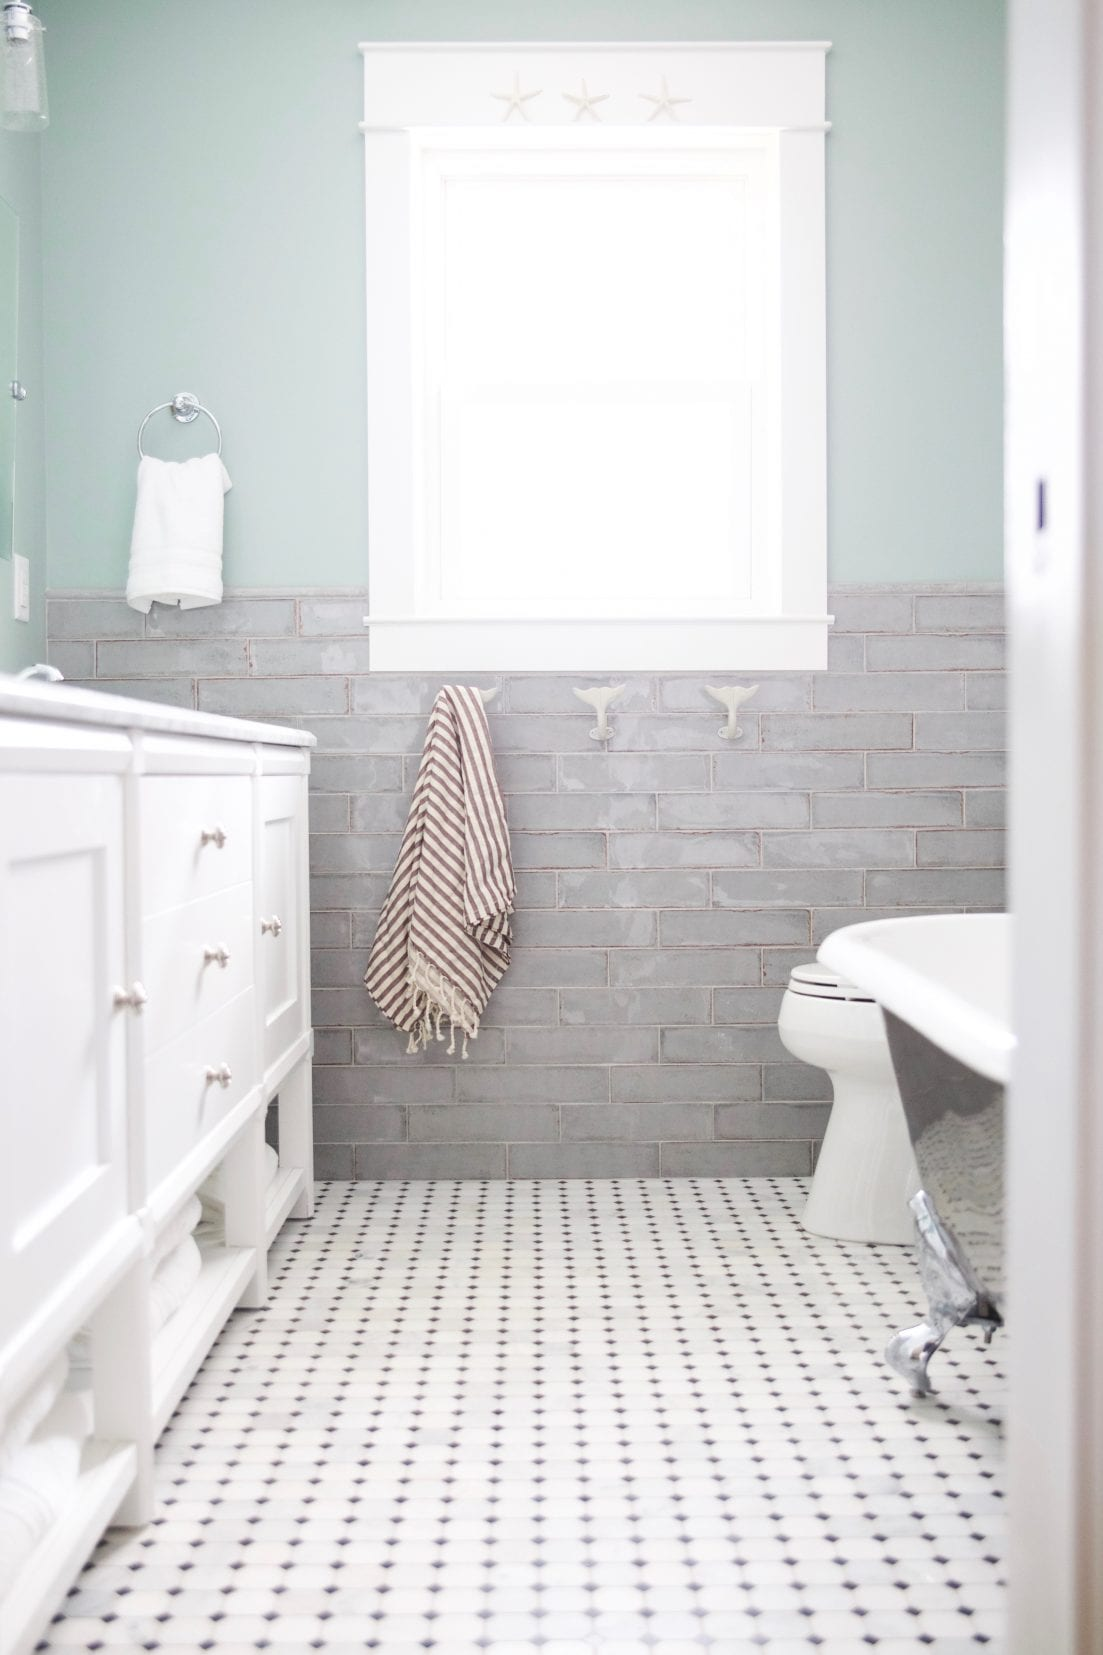 Designing a Small Bathroom - Helpful Tips & Tricks For A Small Bathroom.